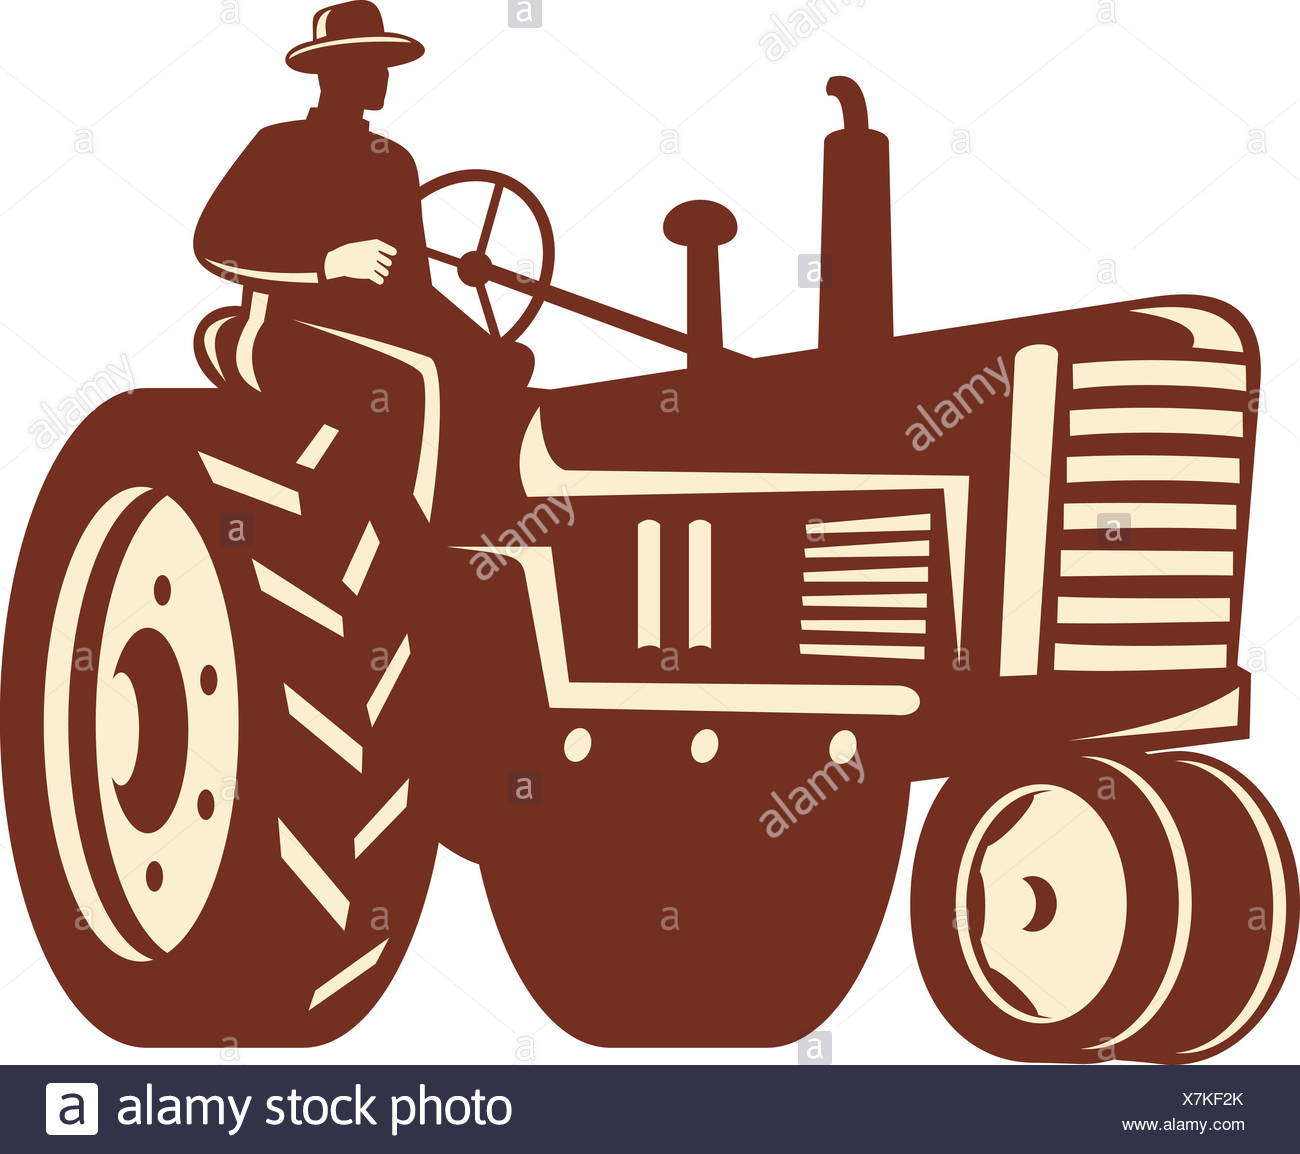 Illustration Of A Farmer Worker Driving A Vintage Tractor On